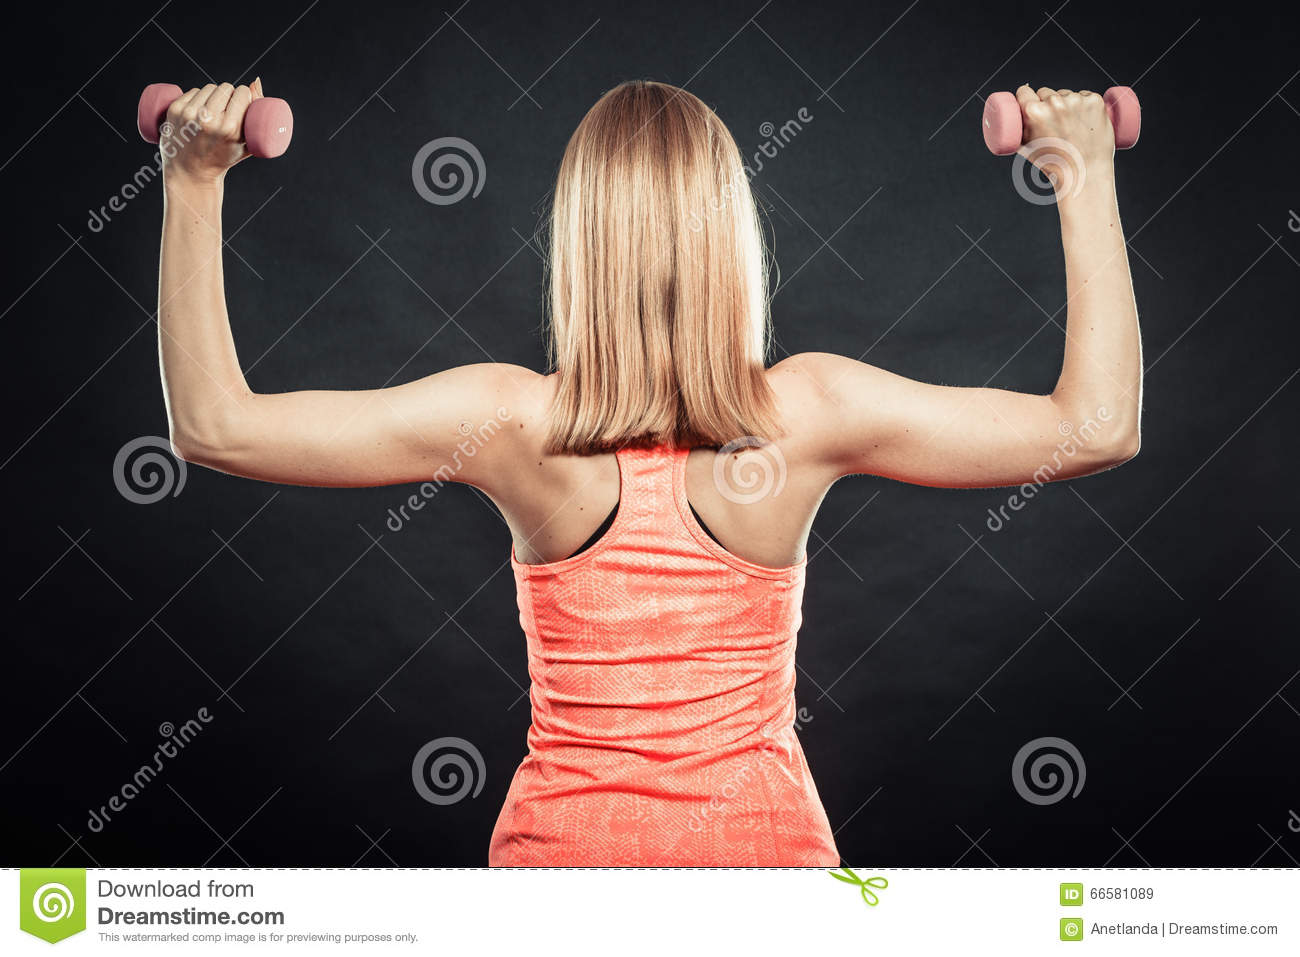 women and societies views on weight Society's pressure to be perfect june  for decades women have been put under the  women's magazines had about 105 times as many weight loss.